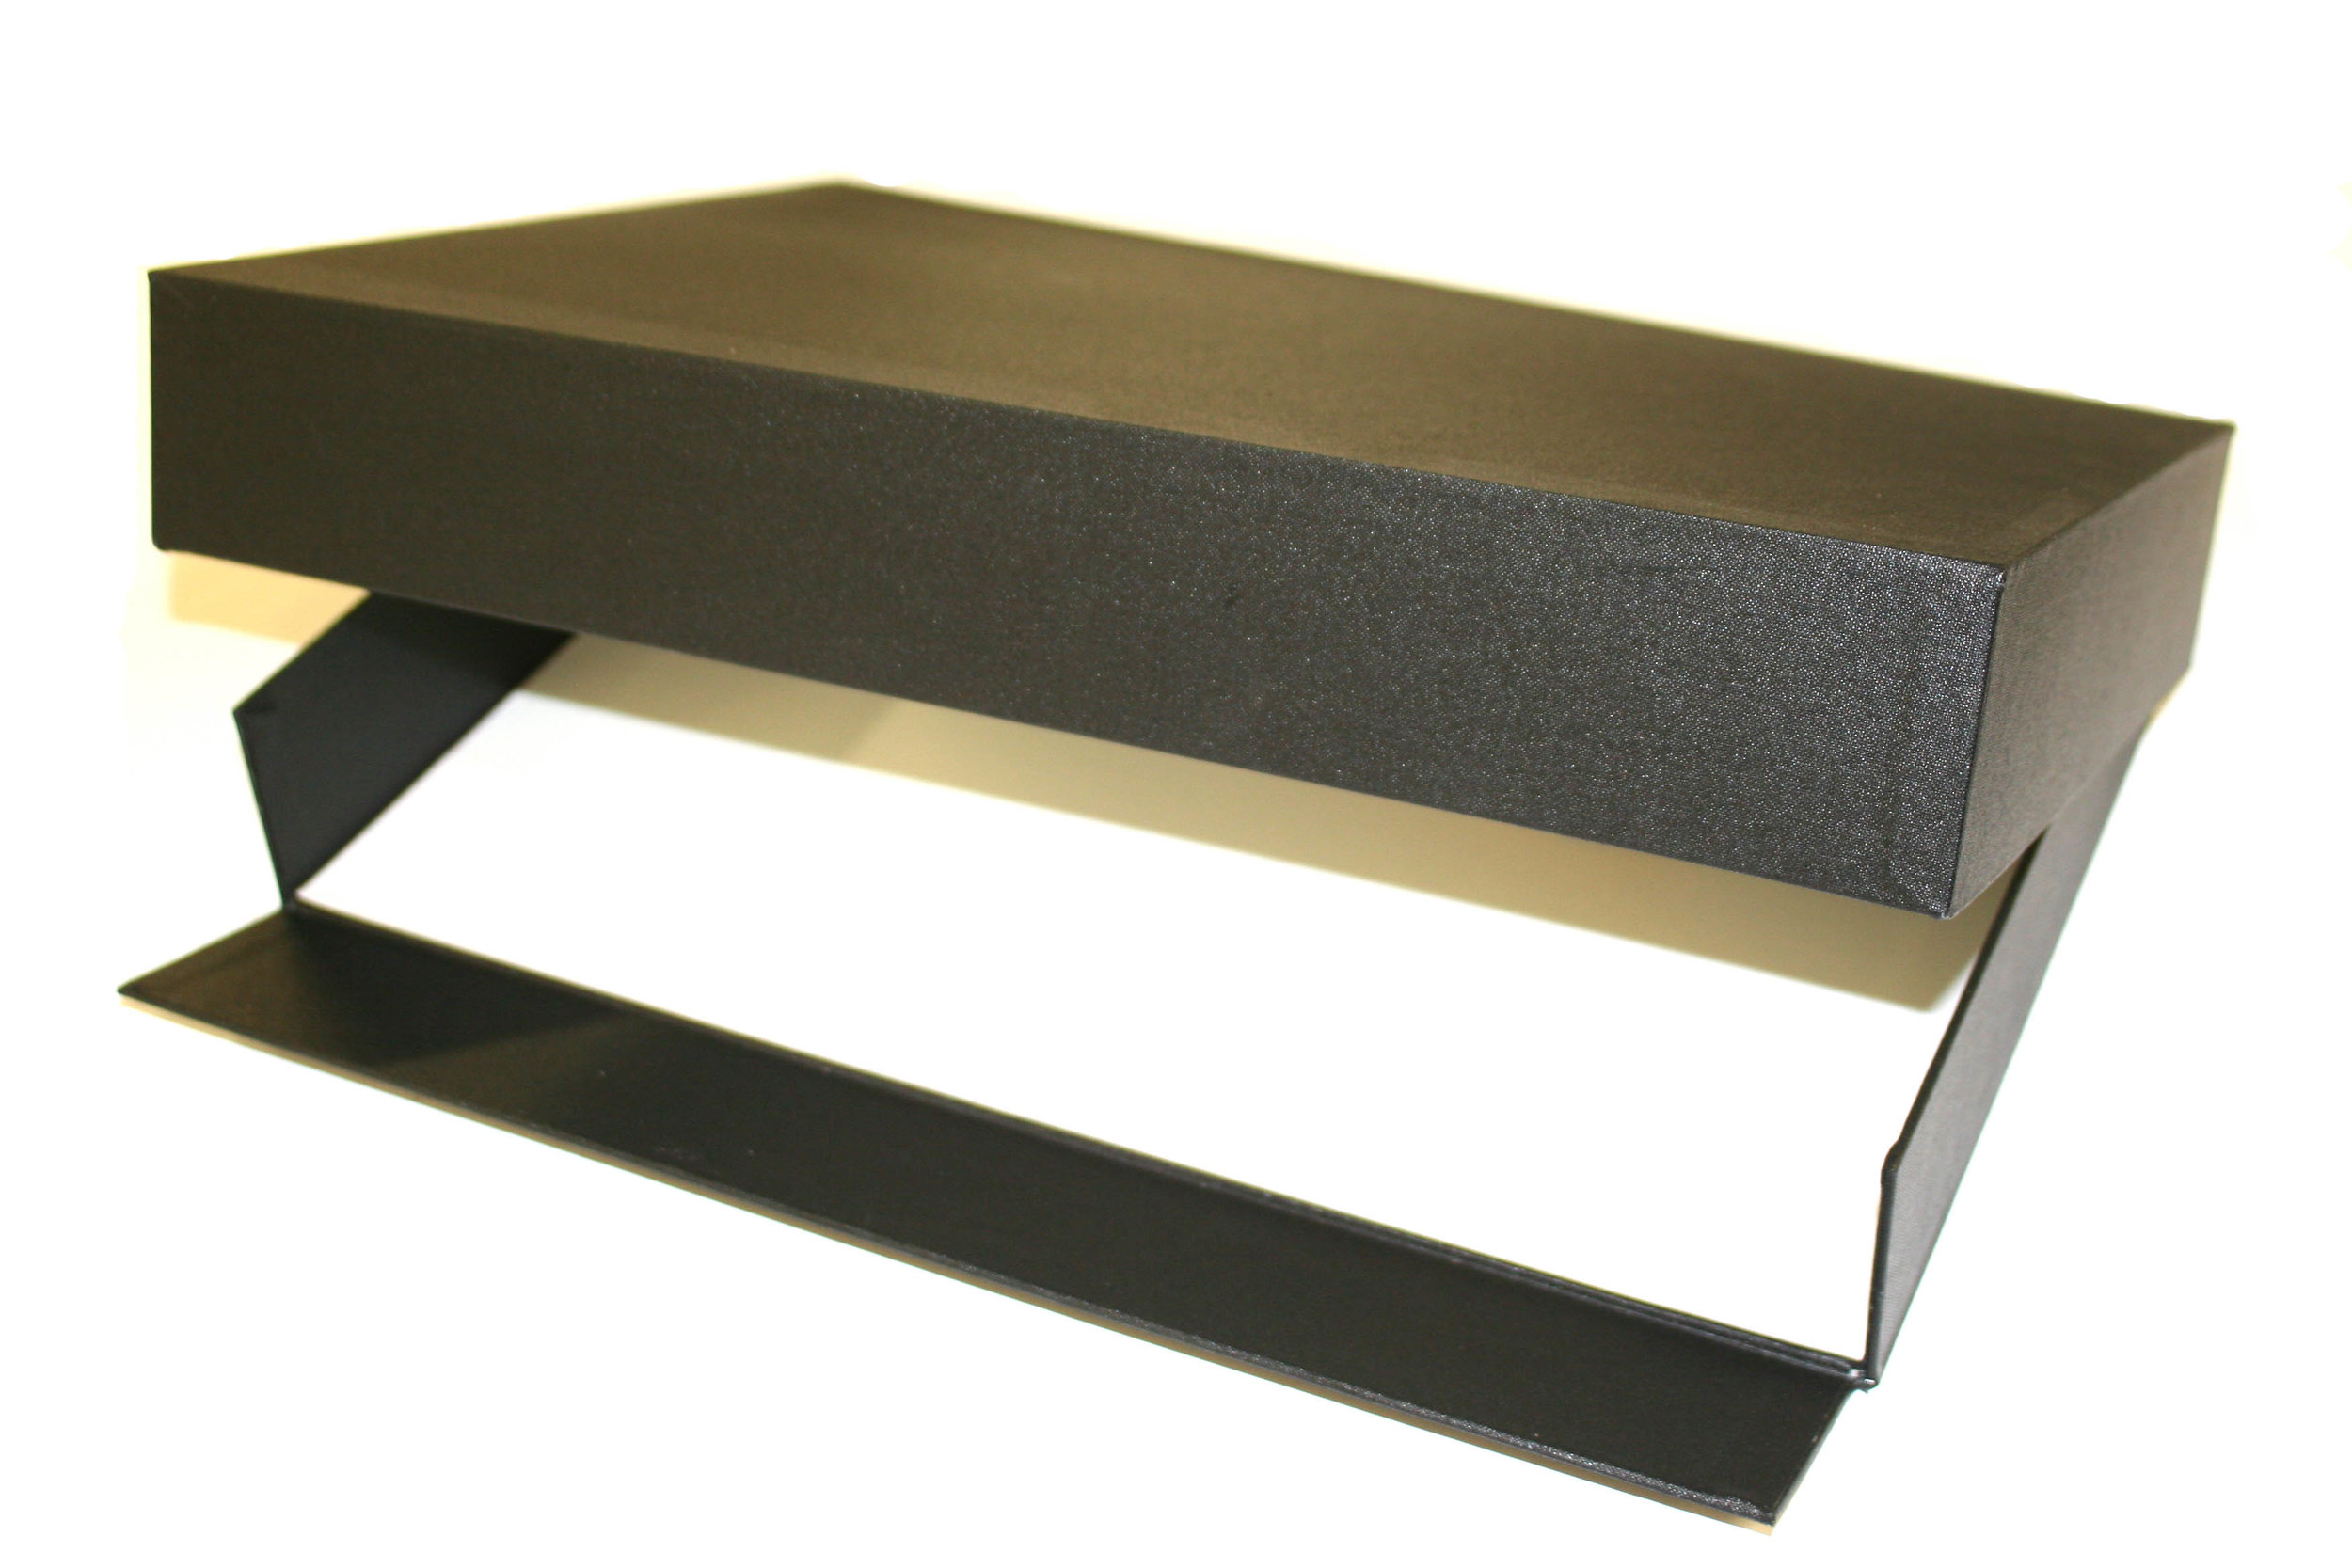 Drop Down Spine Box with Flap